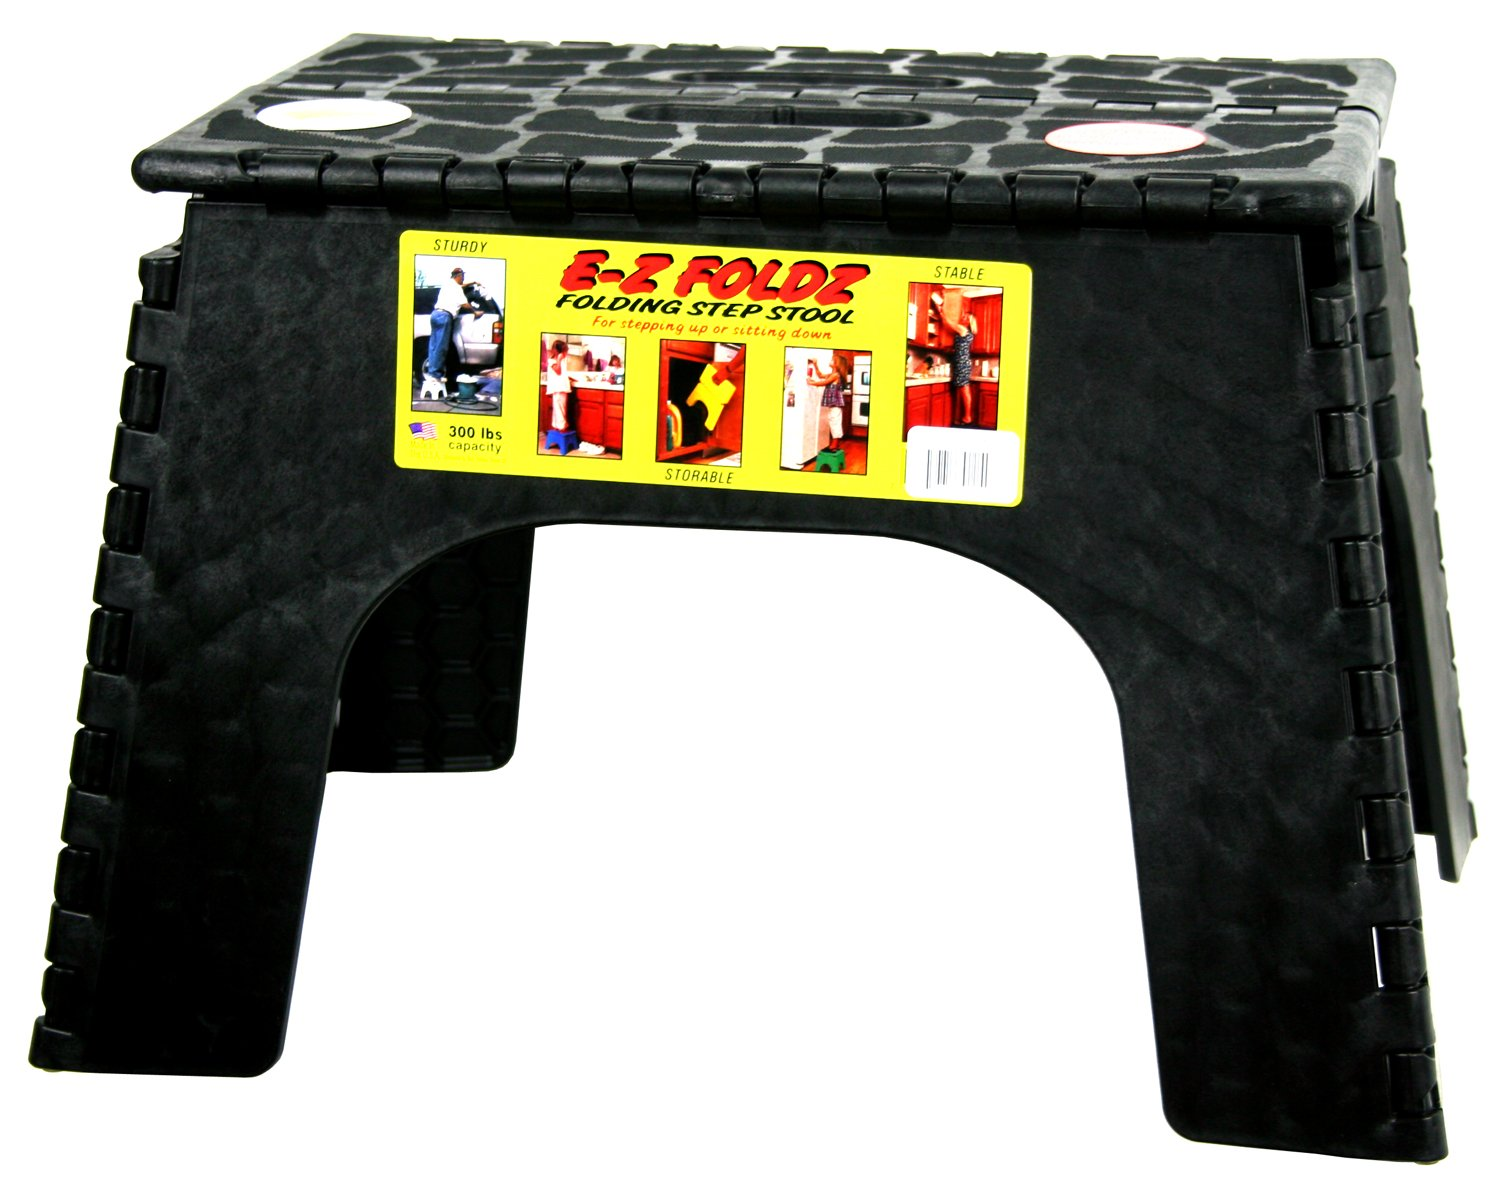 Amazon.com B u0026 R Plastics 103-6BK E-Z Foldz Black 12  Step Stool Automotive  sc 1 st  Amazon.com : plastic step stool walmart - islam-shia.org